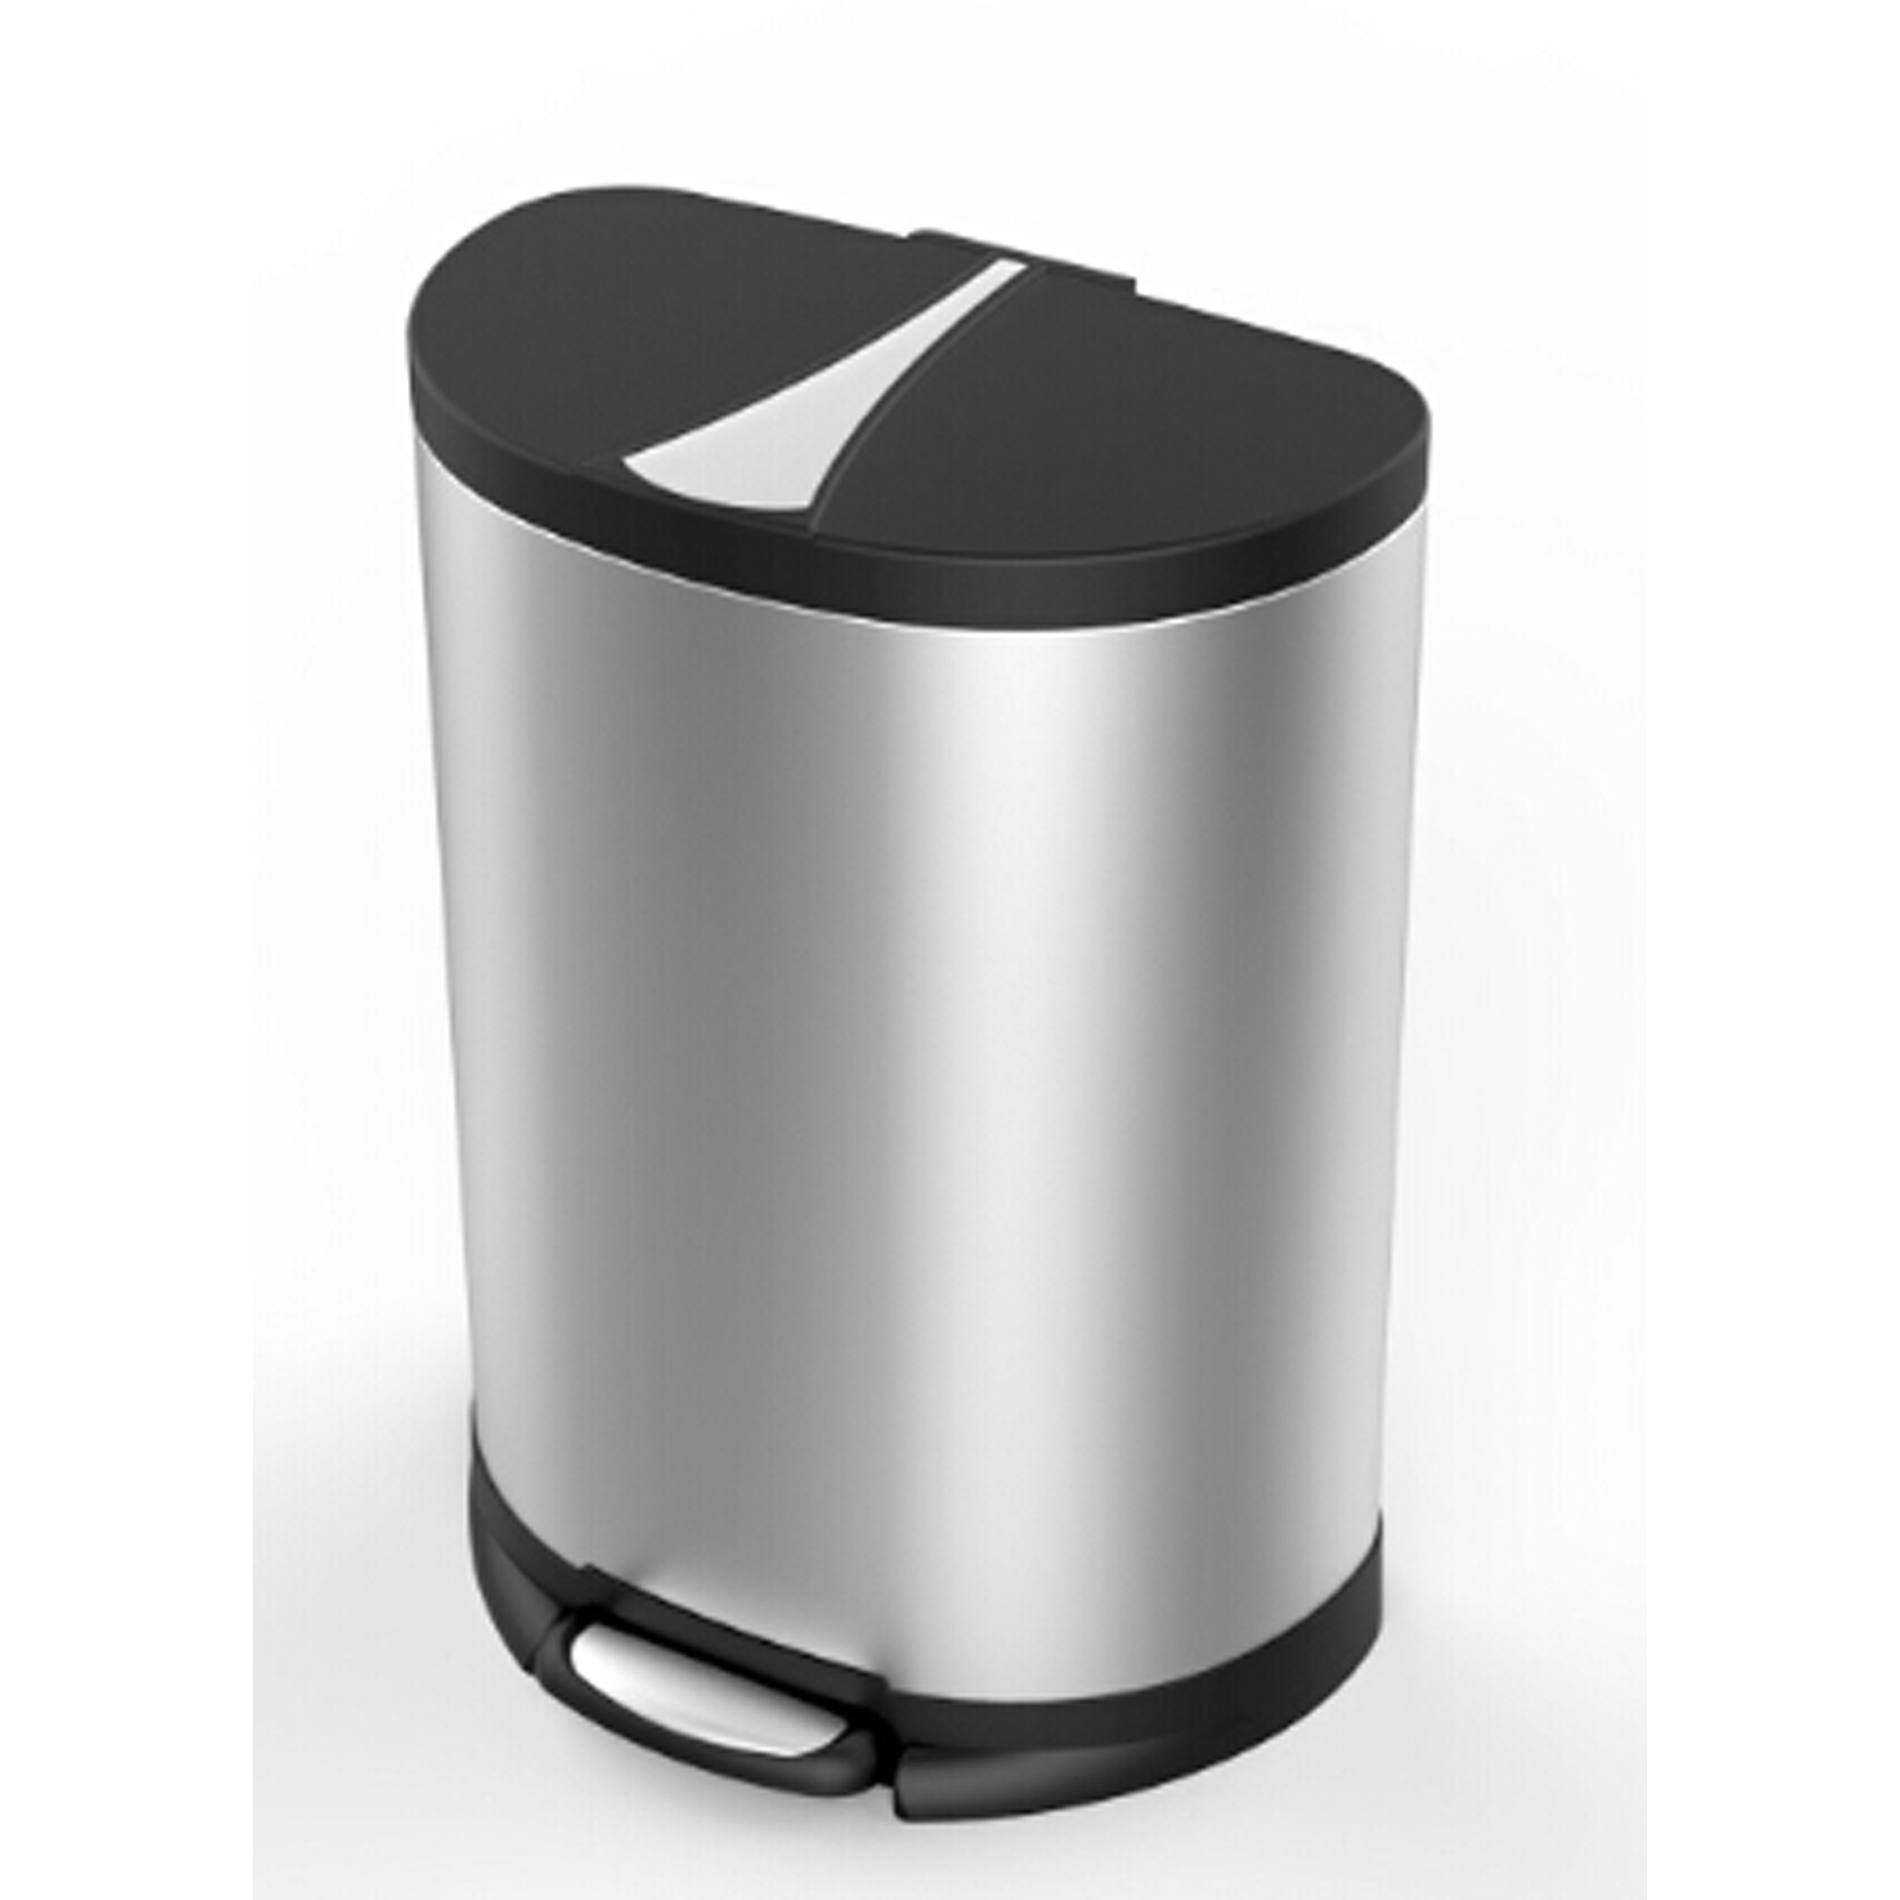 Small Kitchen Trash Cans Essential Home 50 Liter Semi Round Stainless Steel Trash Can